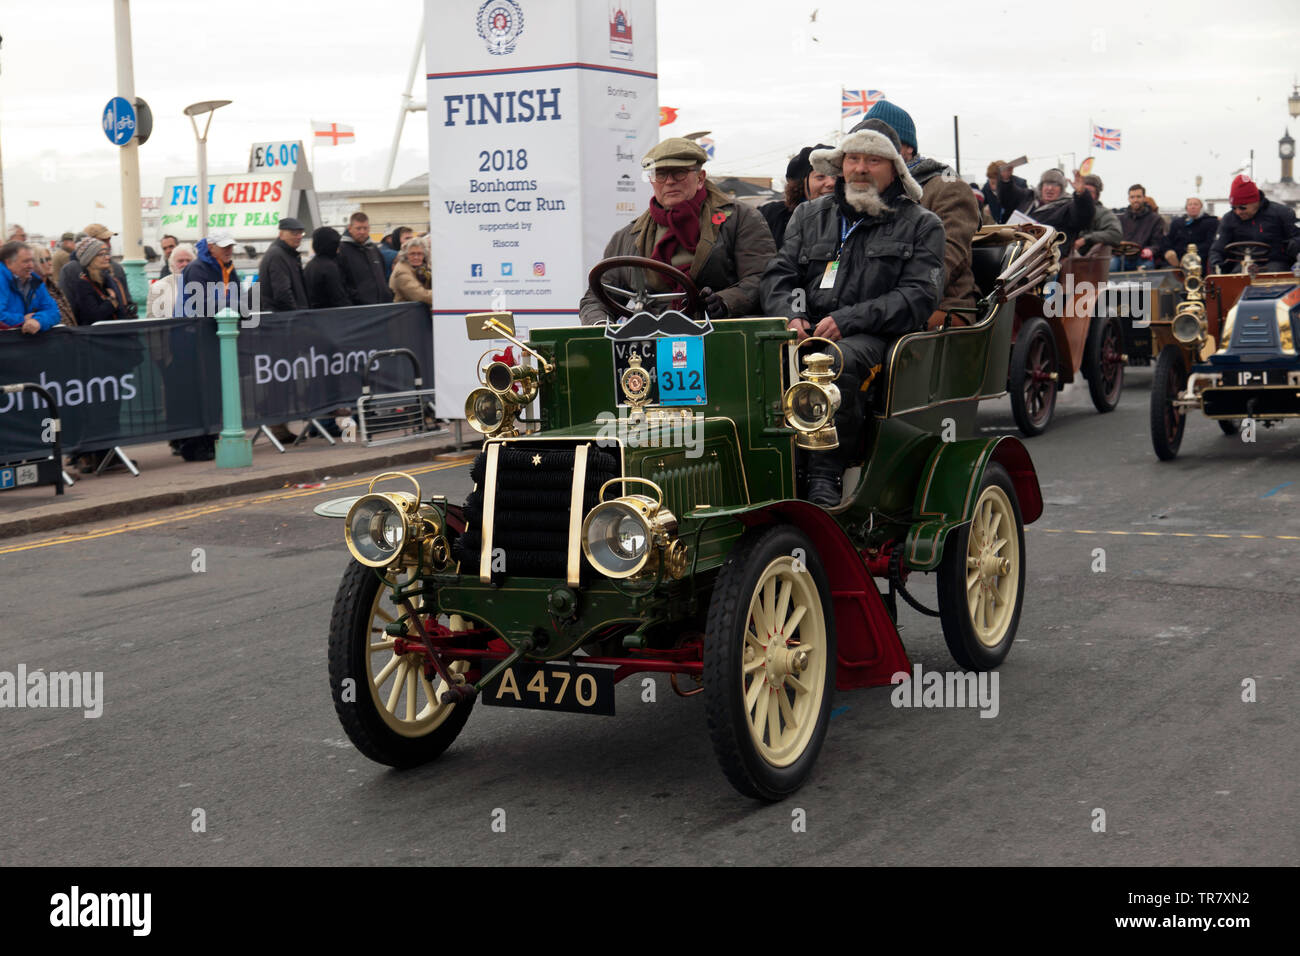 Mr Peter John Newens driving a 1904 Star, across the finishing line of the 2018 London to Brighton Veteran Car Run - Stock Image